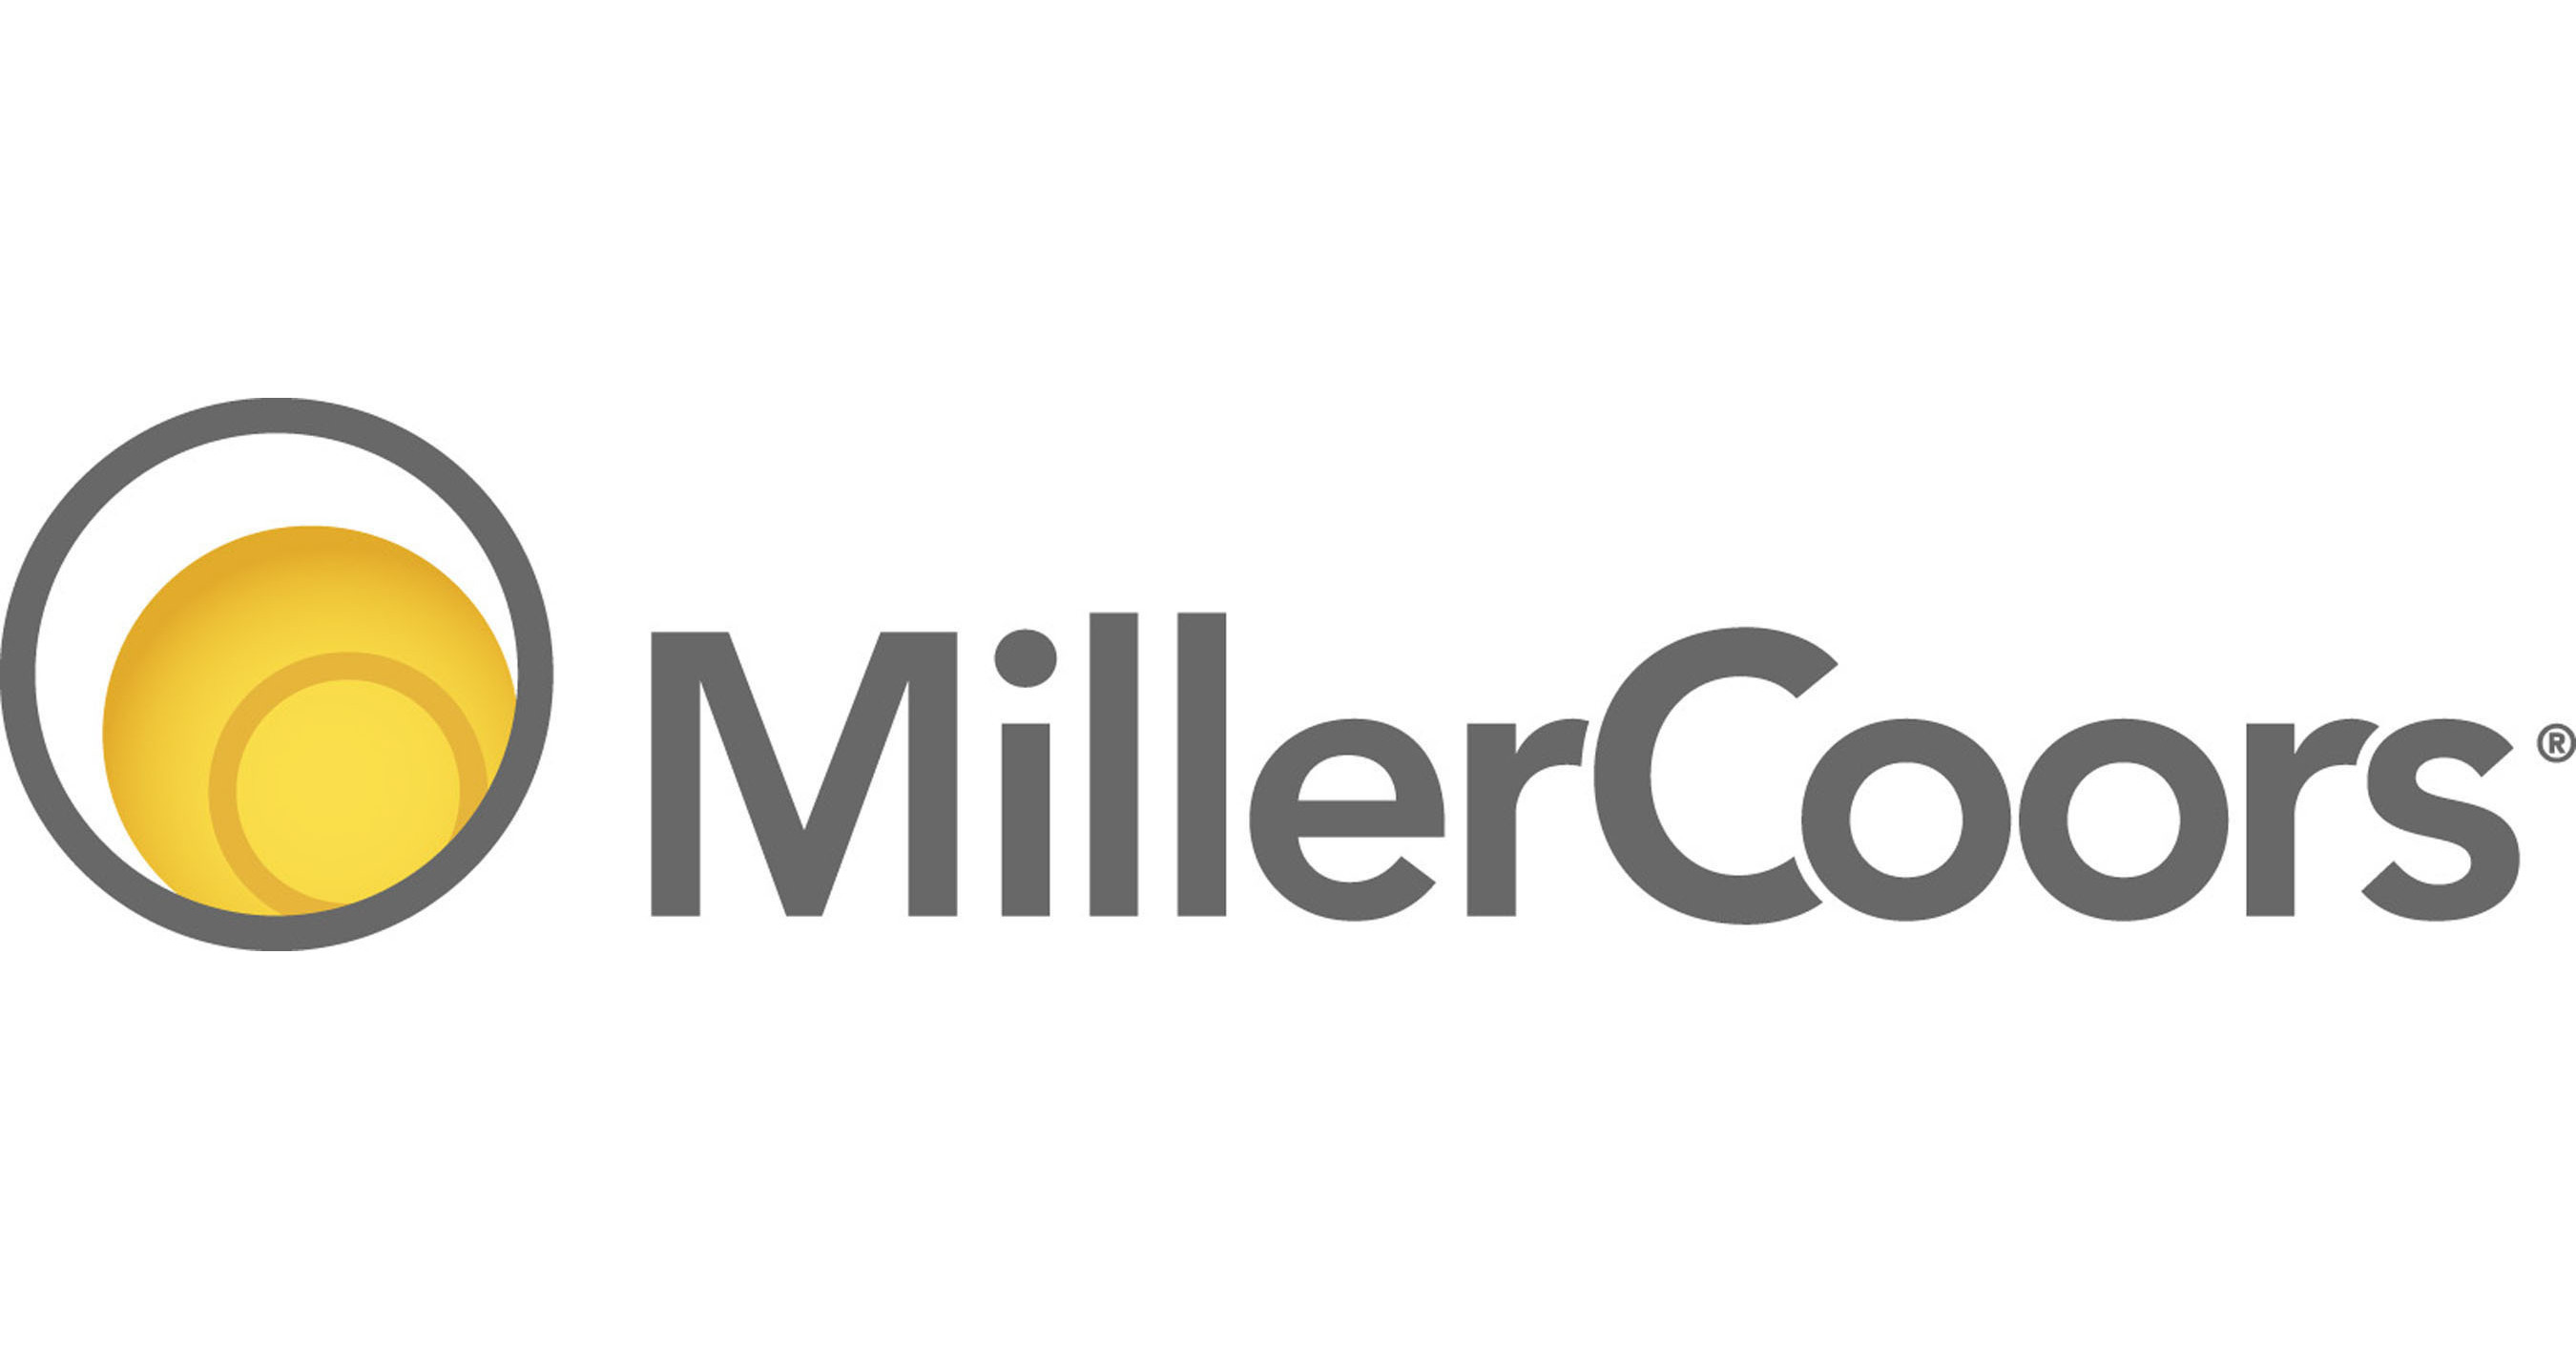 Millercoors Uses 15 Billion Fewer Gallons Of Water In 2016 photo